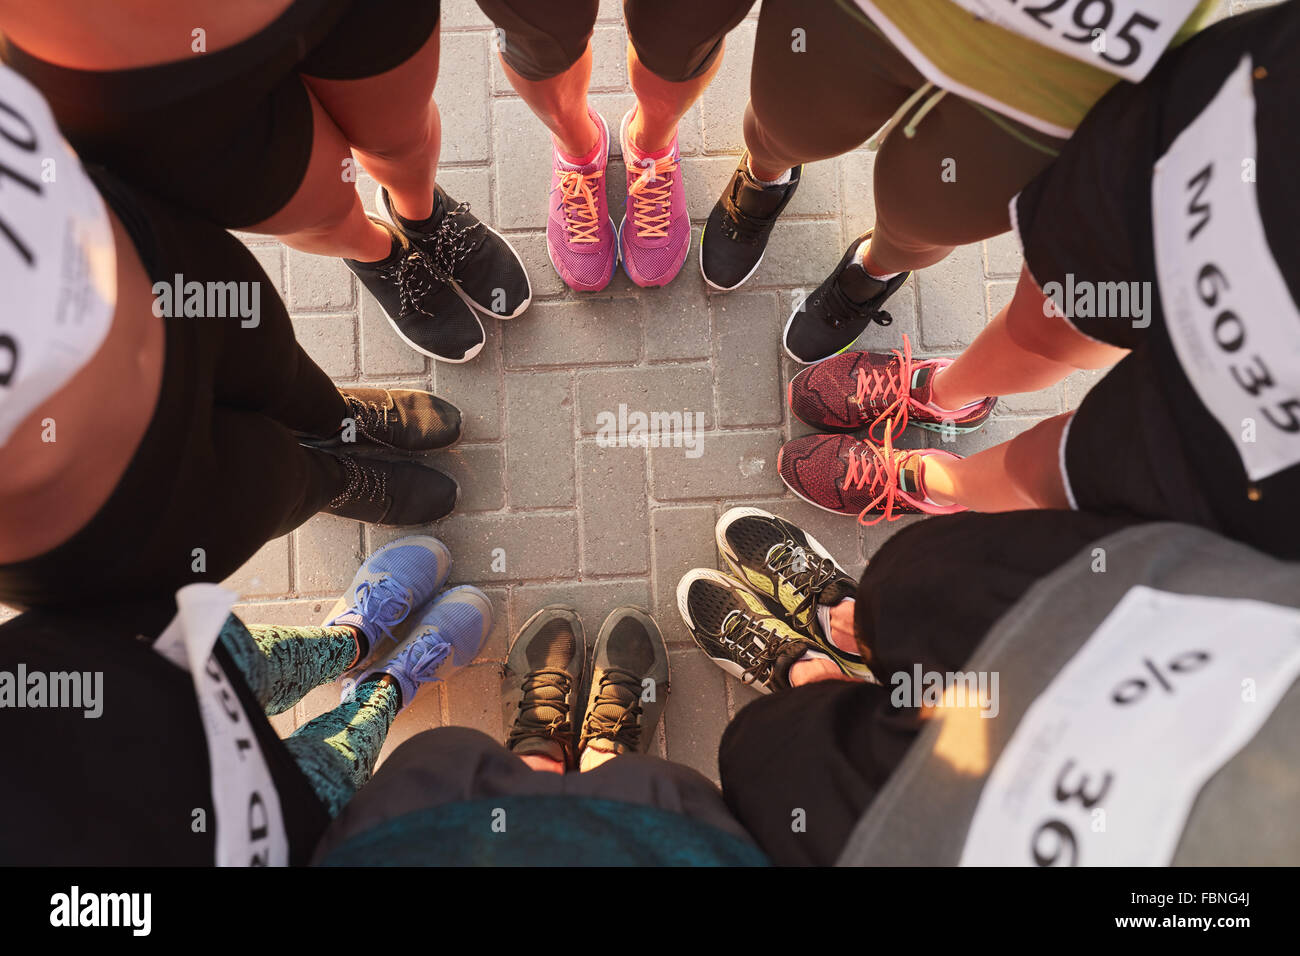 Top view of feet of people standing in a circle. Runners standing in a huddle with their feet together. - Stock Image